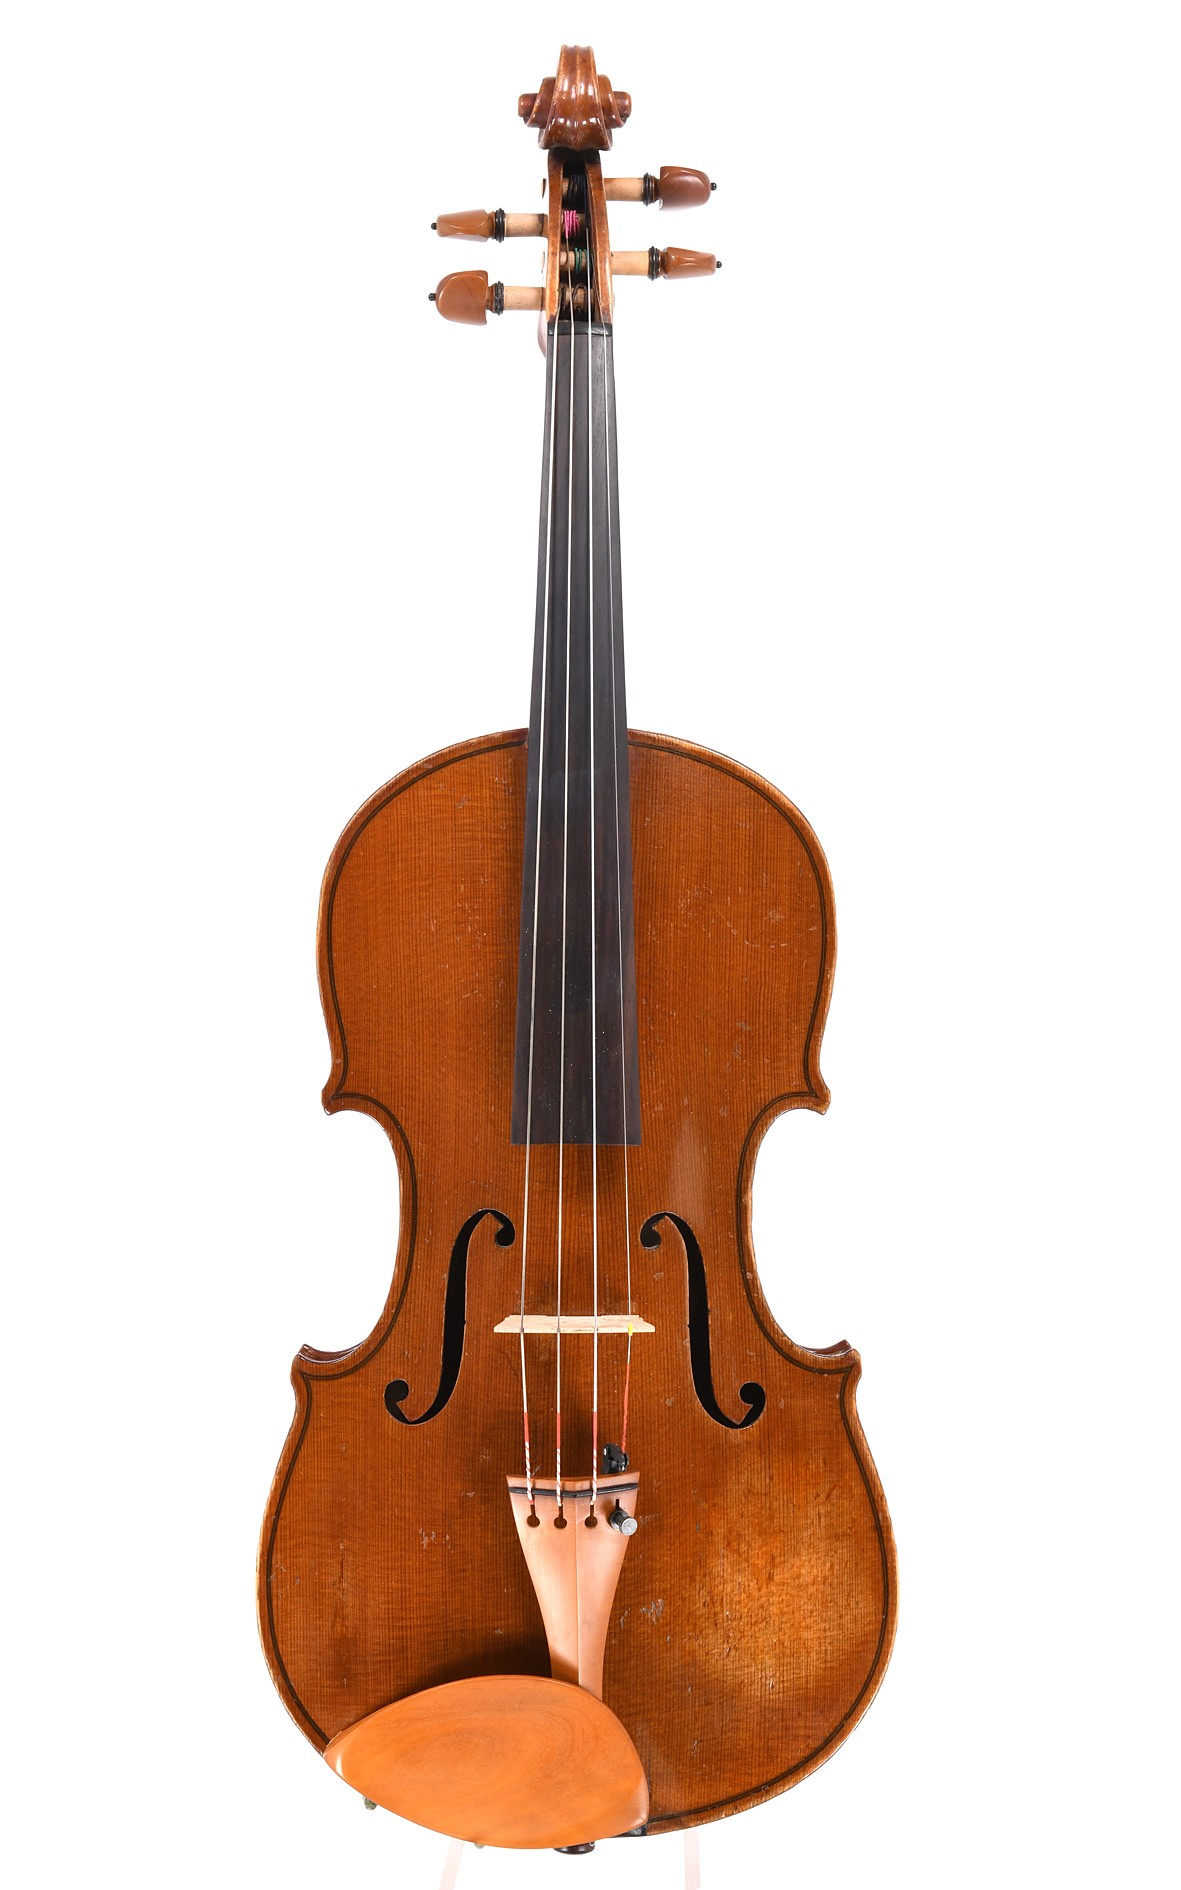 Antique German Violin from Saxony, approx. 1870